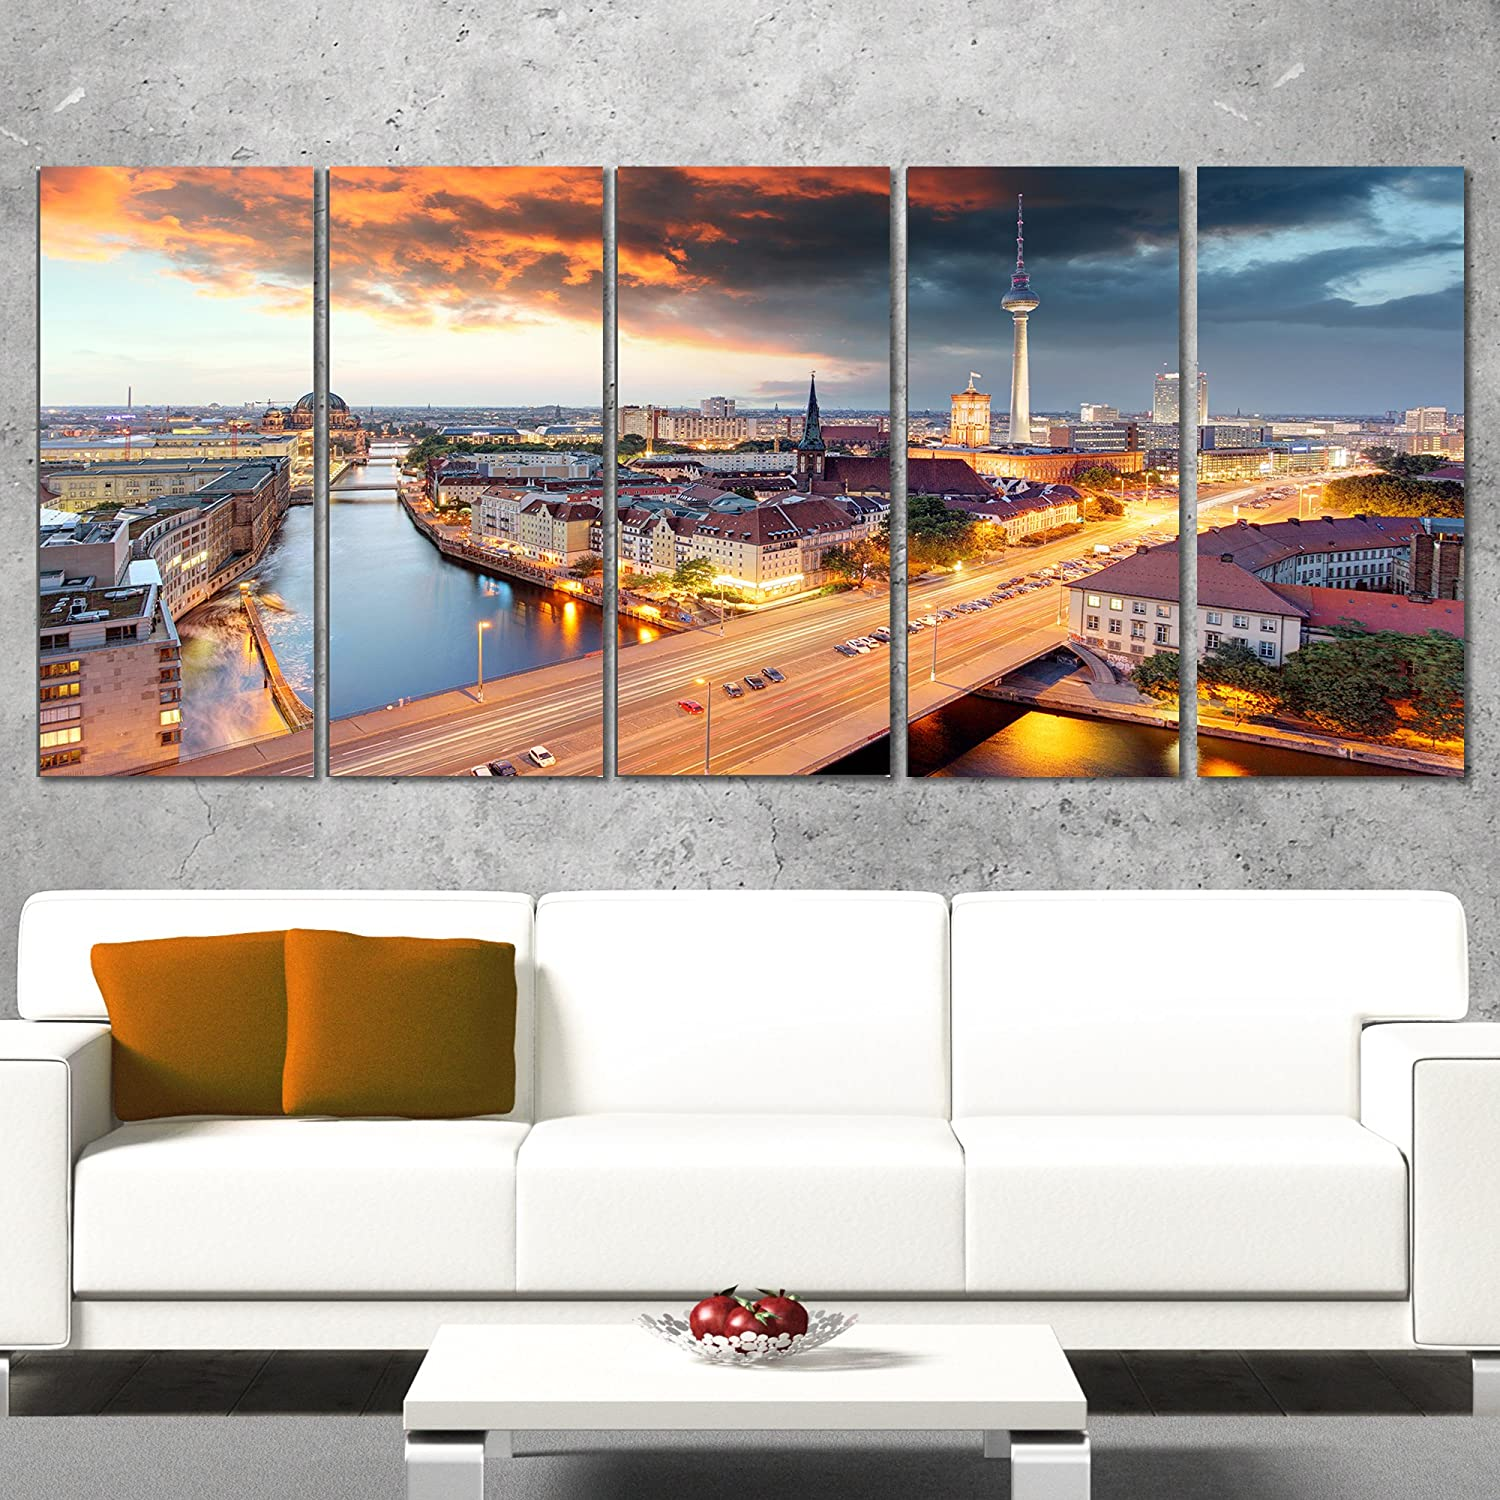 Our shop most popular Max 44% OFF Designart Berlin at Dawn with Canvas Dramatic Sky-Cityscape prin